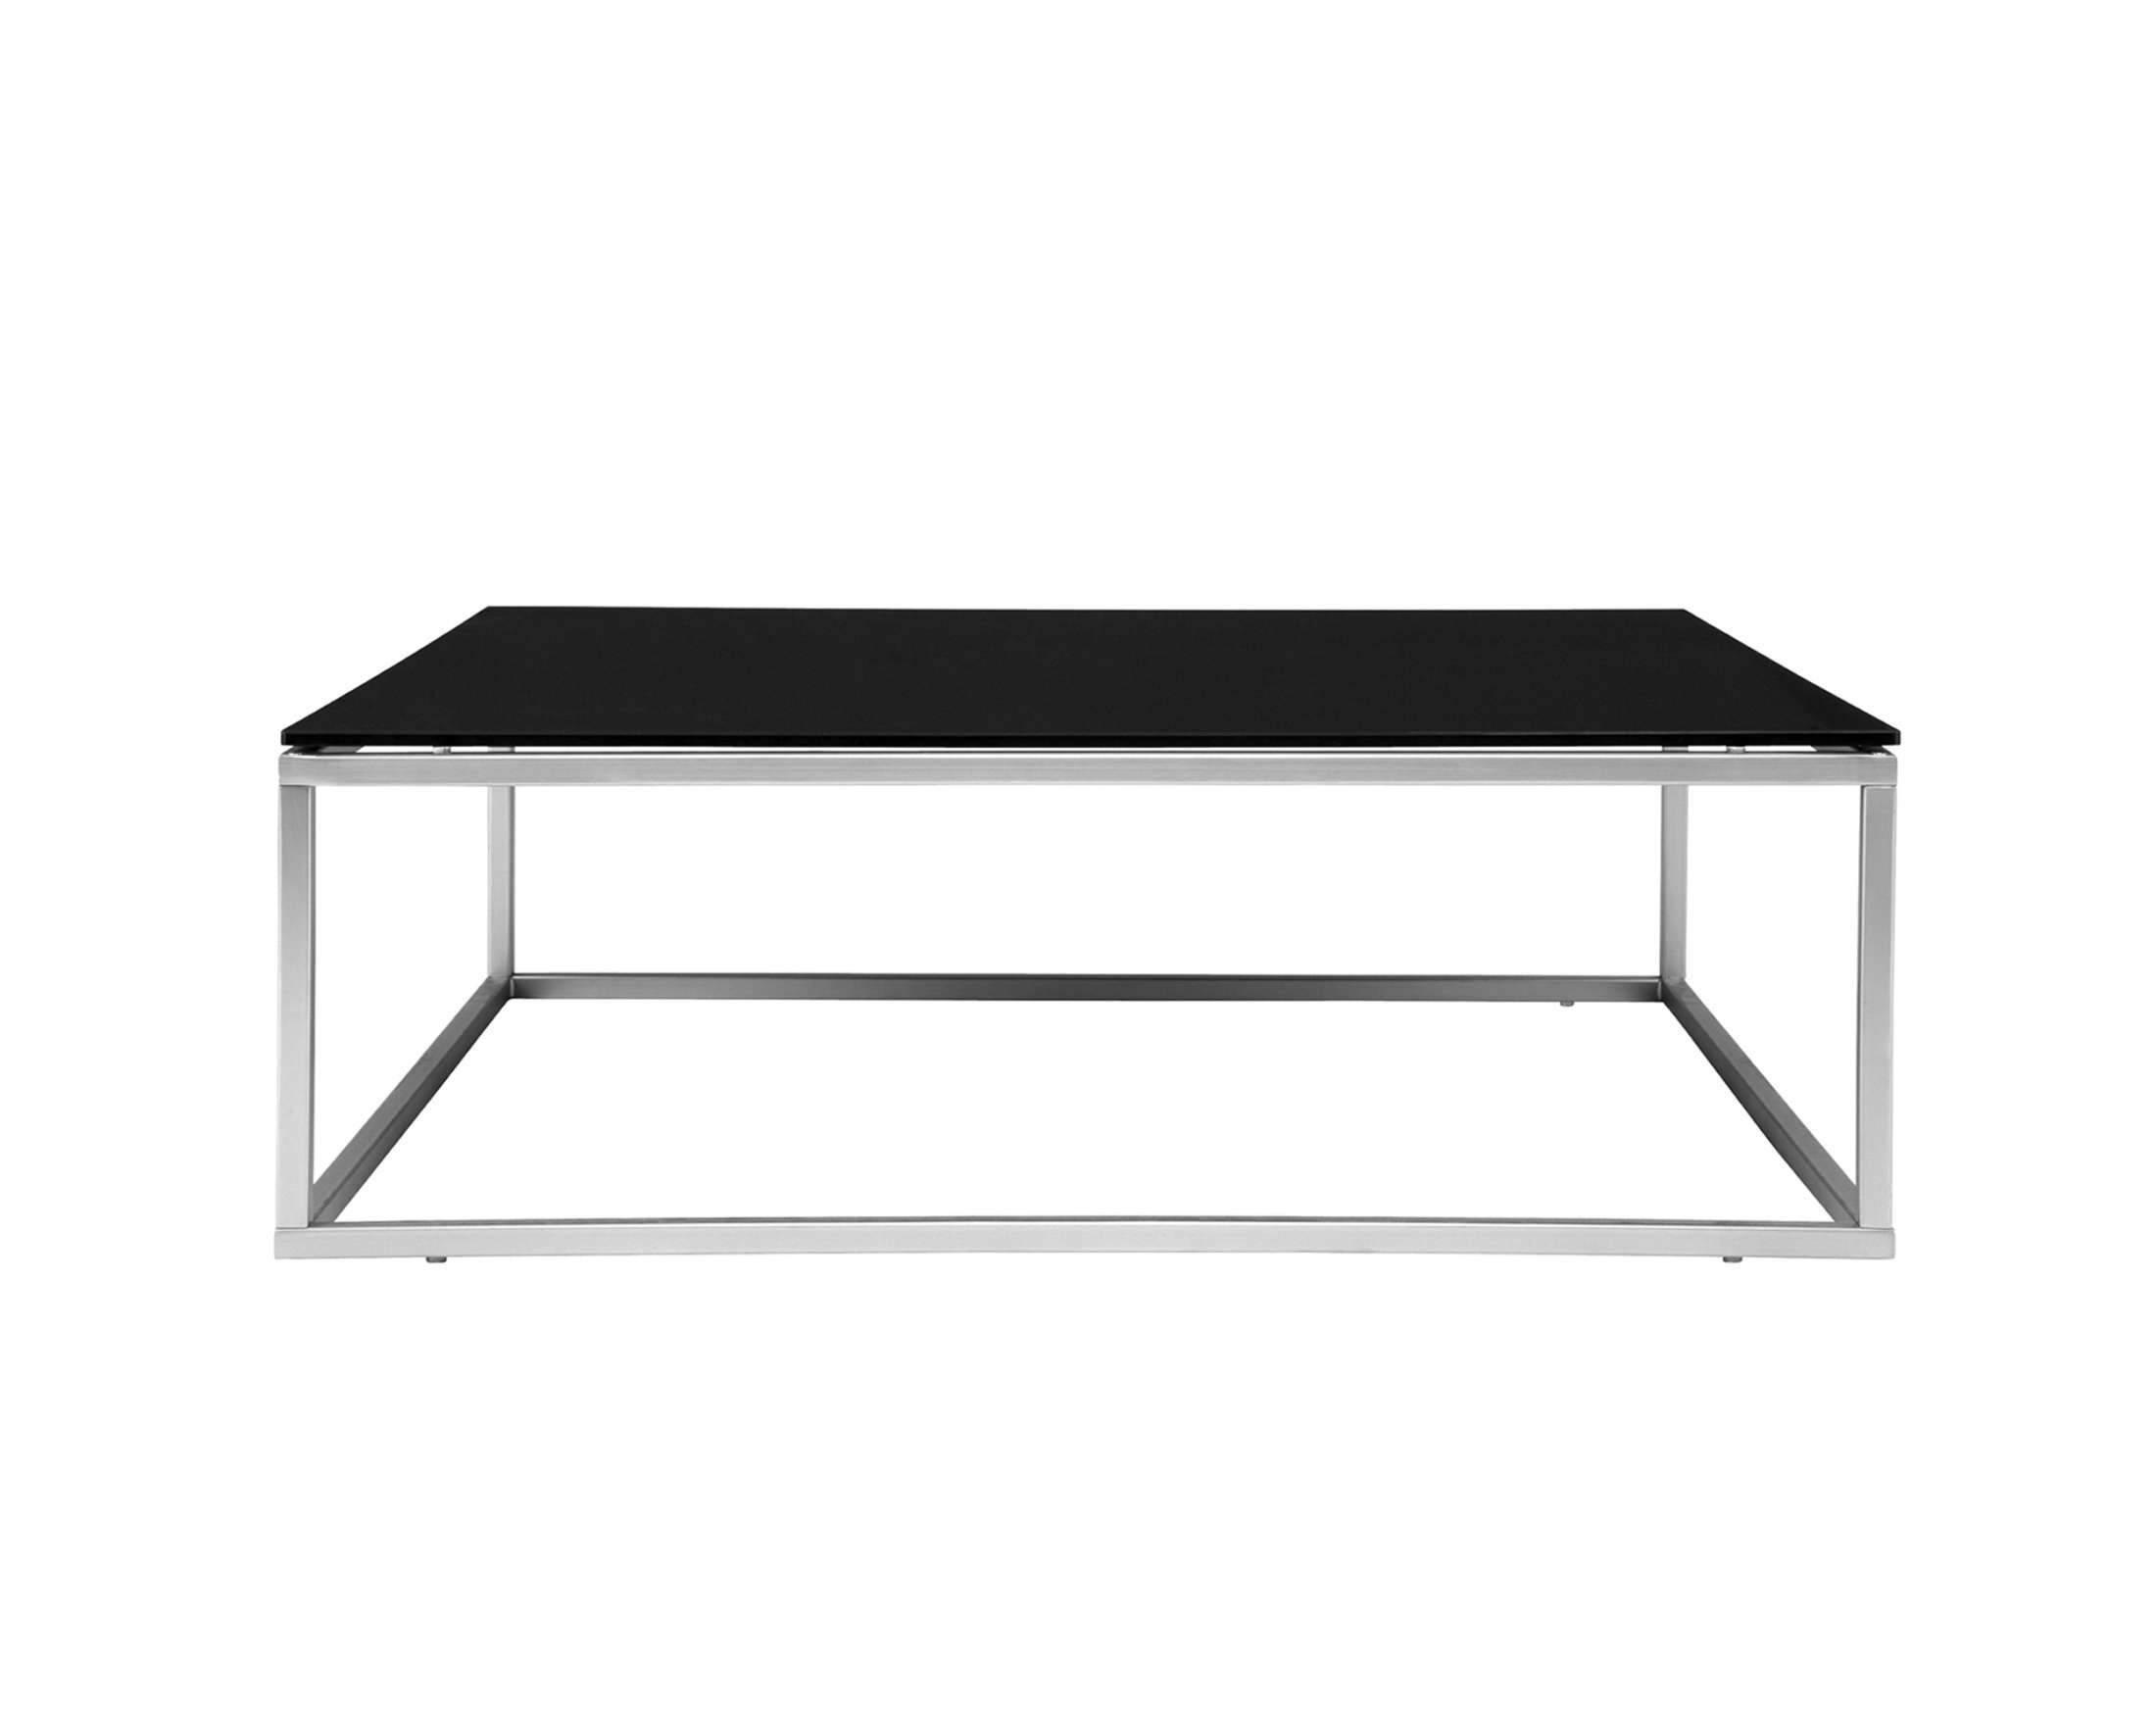 Black Glass Coffee Table With Chrome Legs • Coffee Table Design Within Well Known Chrome Leg Coffee Tables (View 7 of 20)